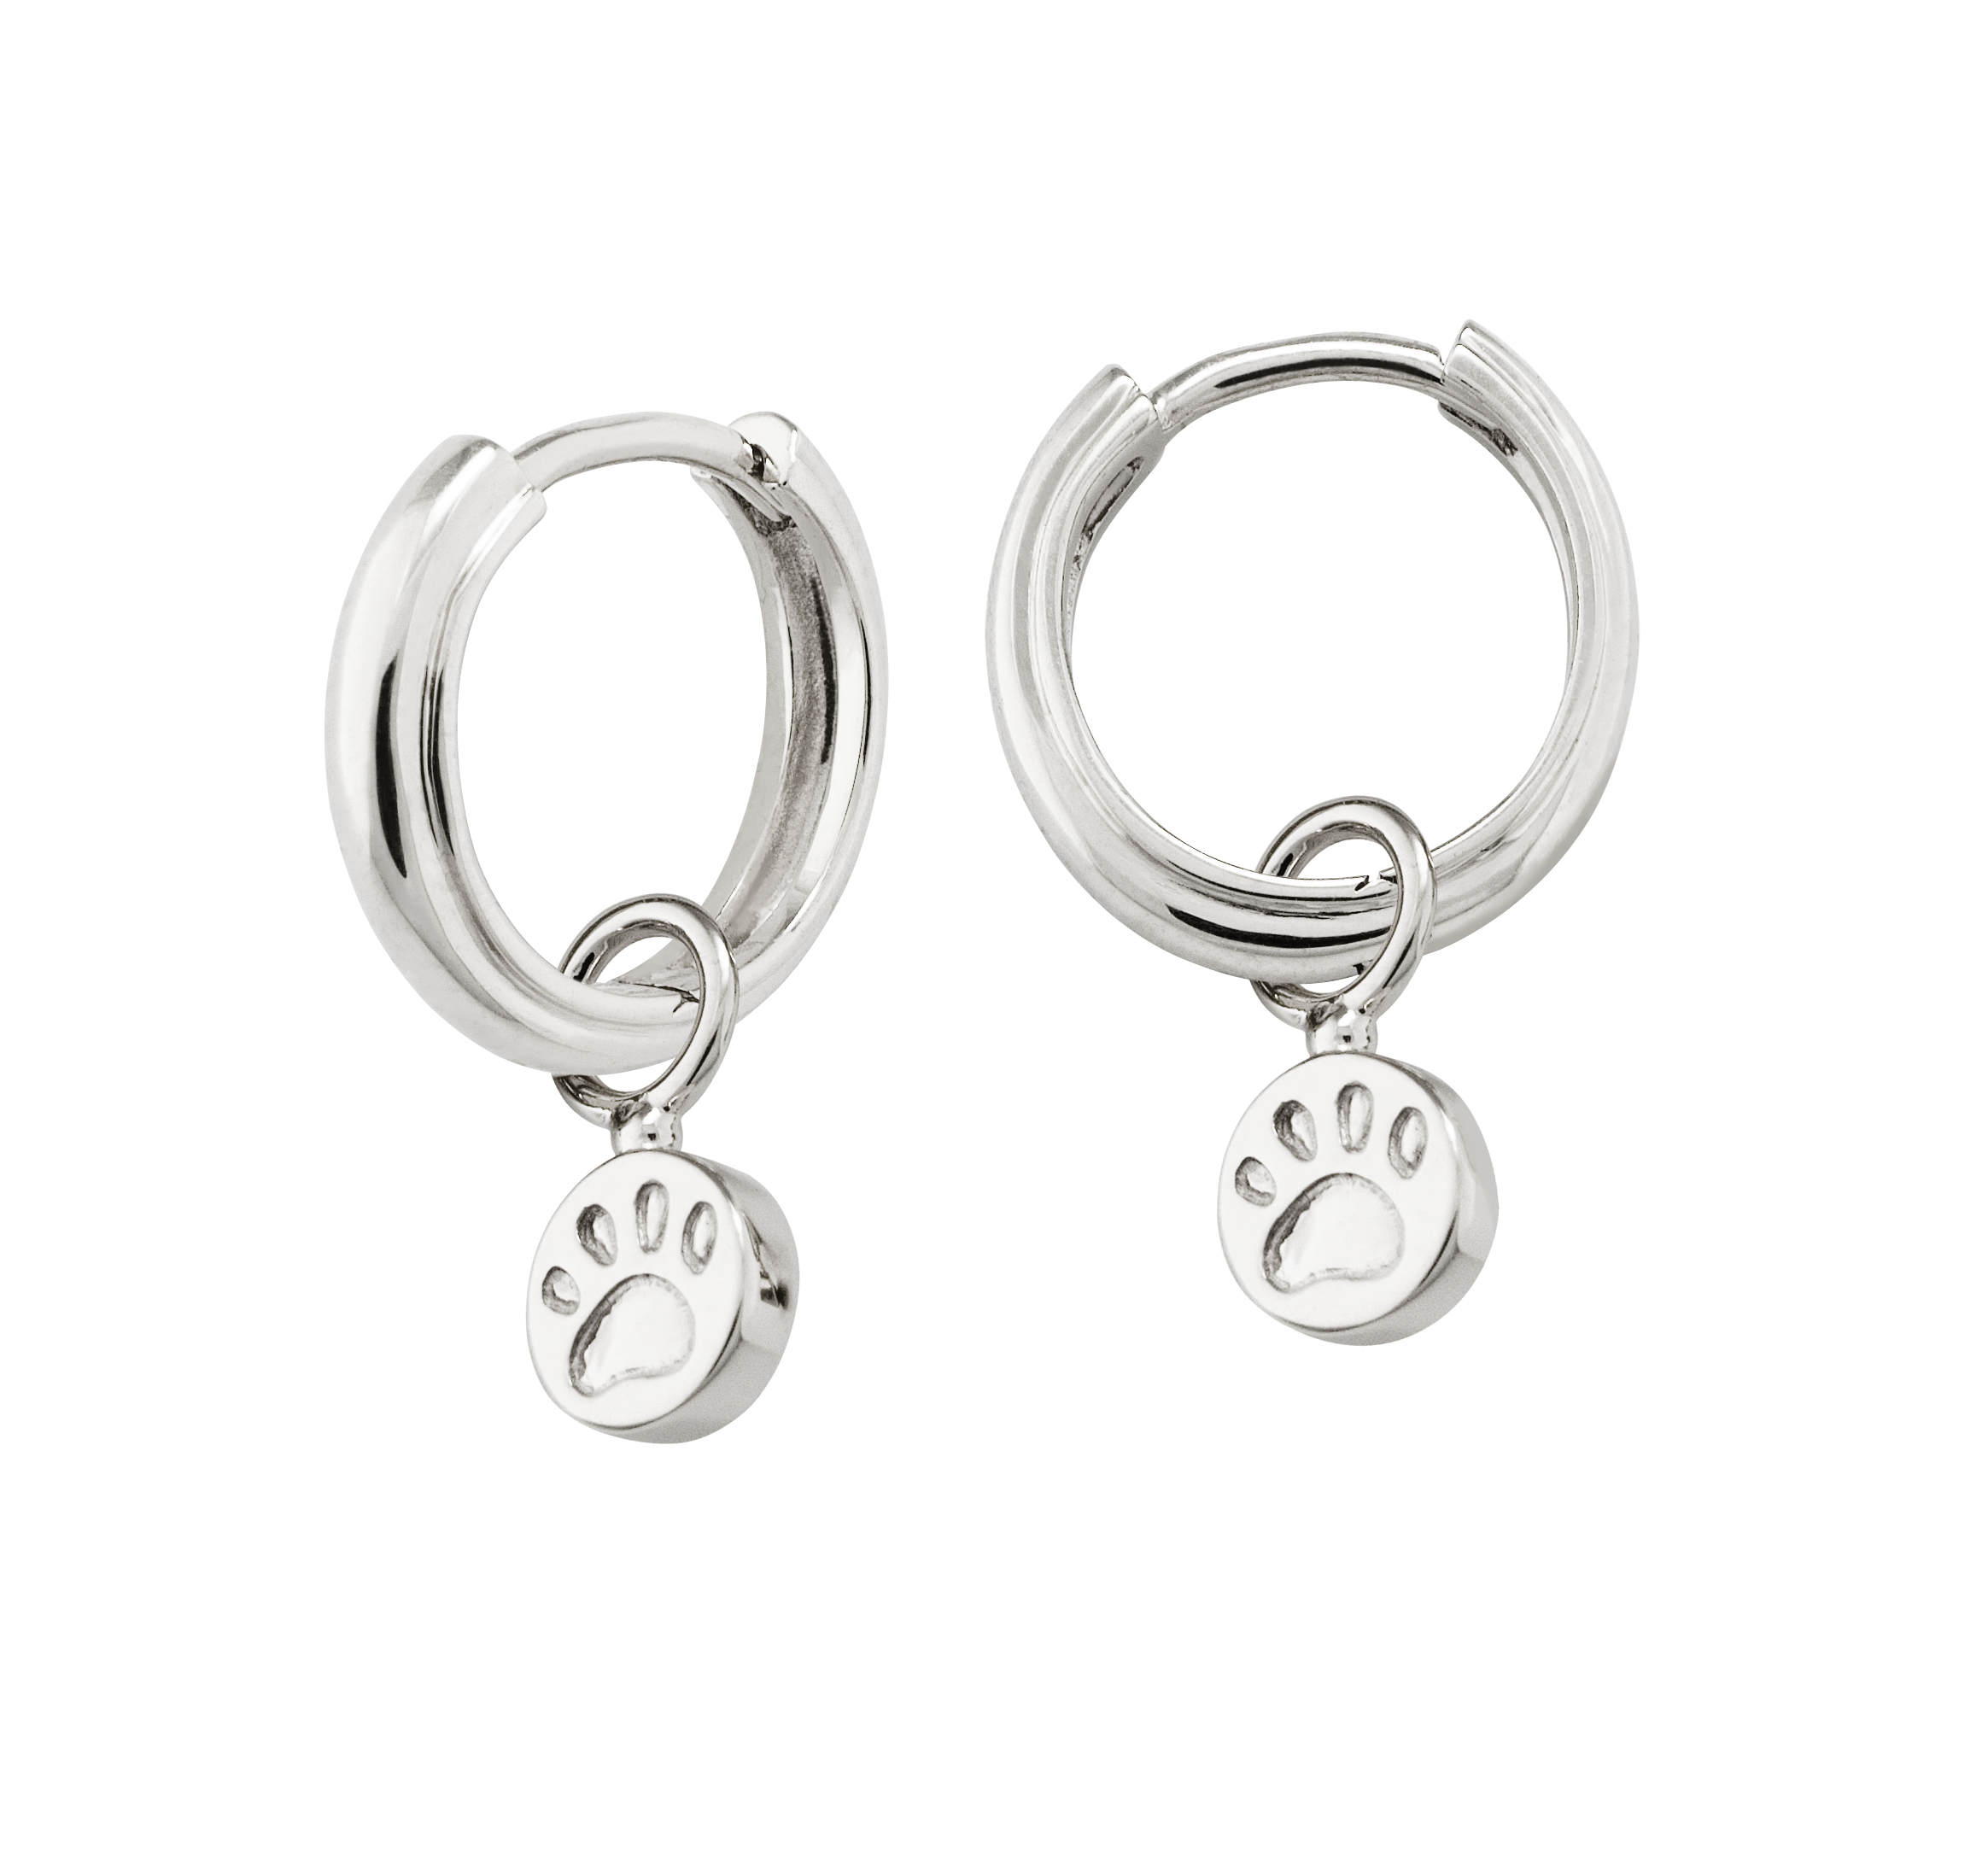 products rosie double kent arrivals maxilla earrings hoop jewellery collections silver hoops sterling new